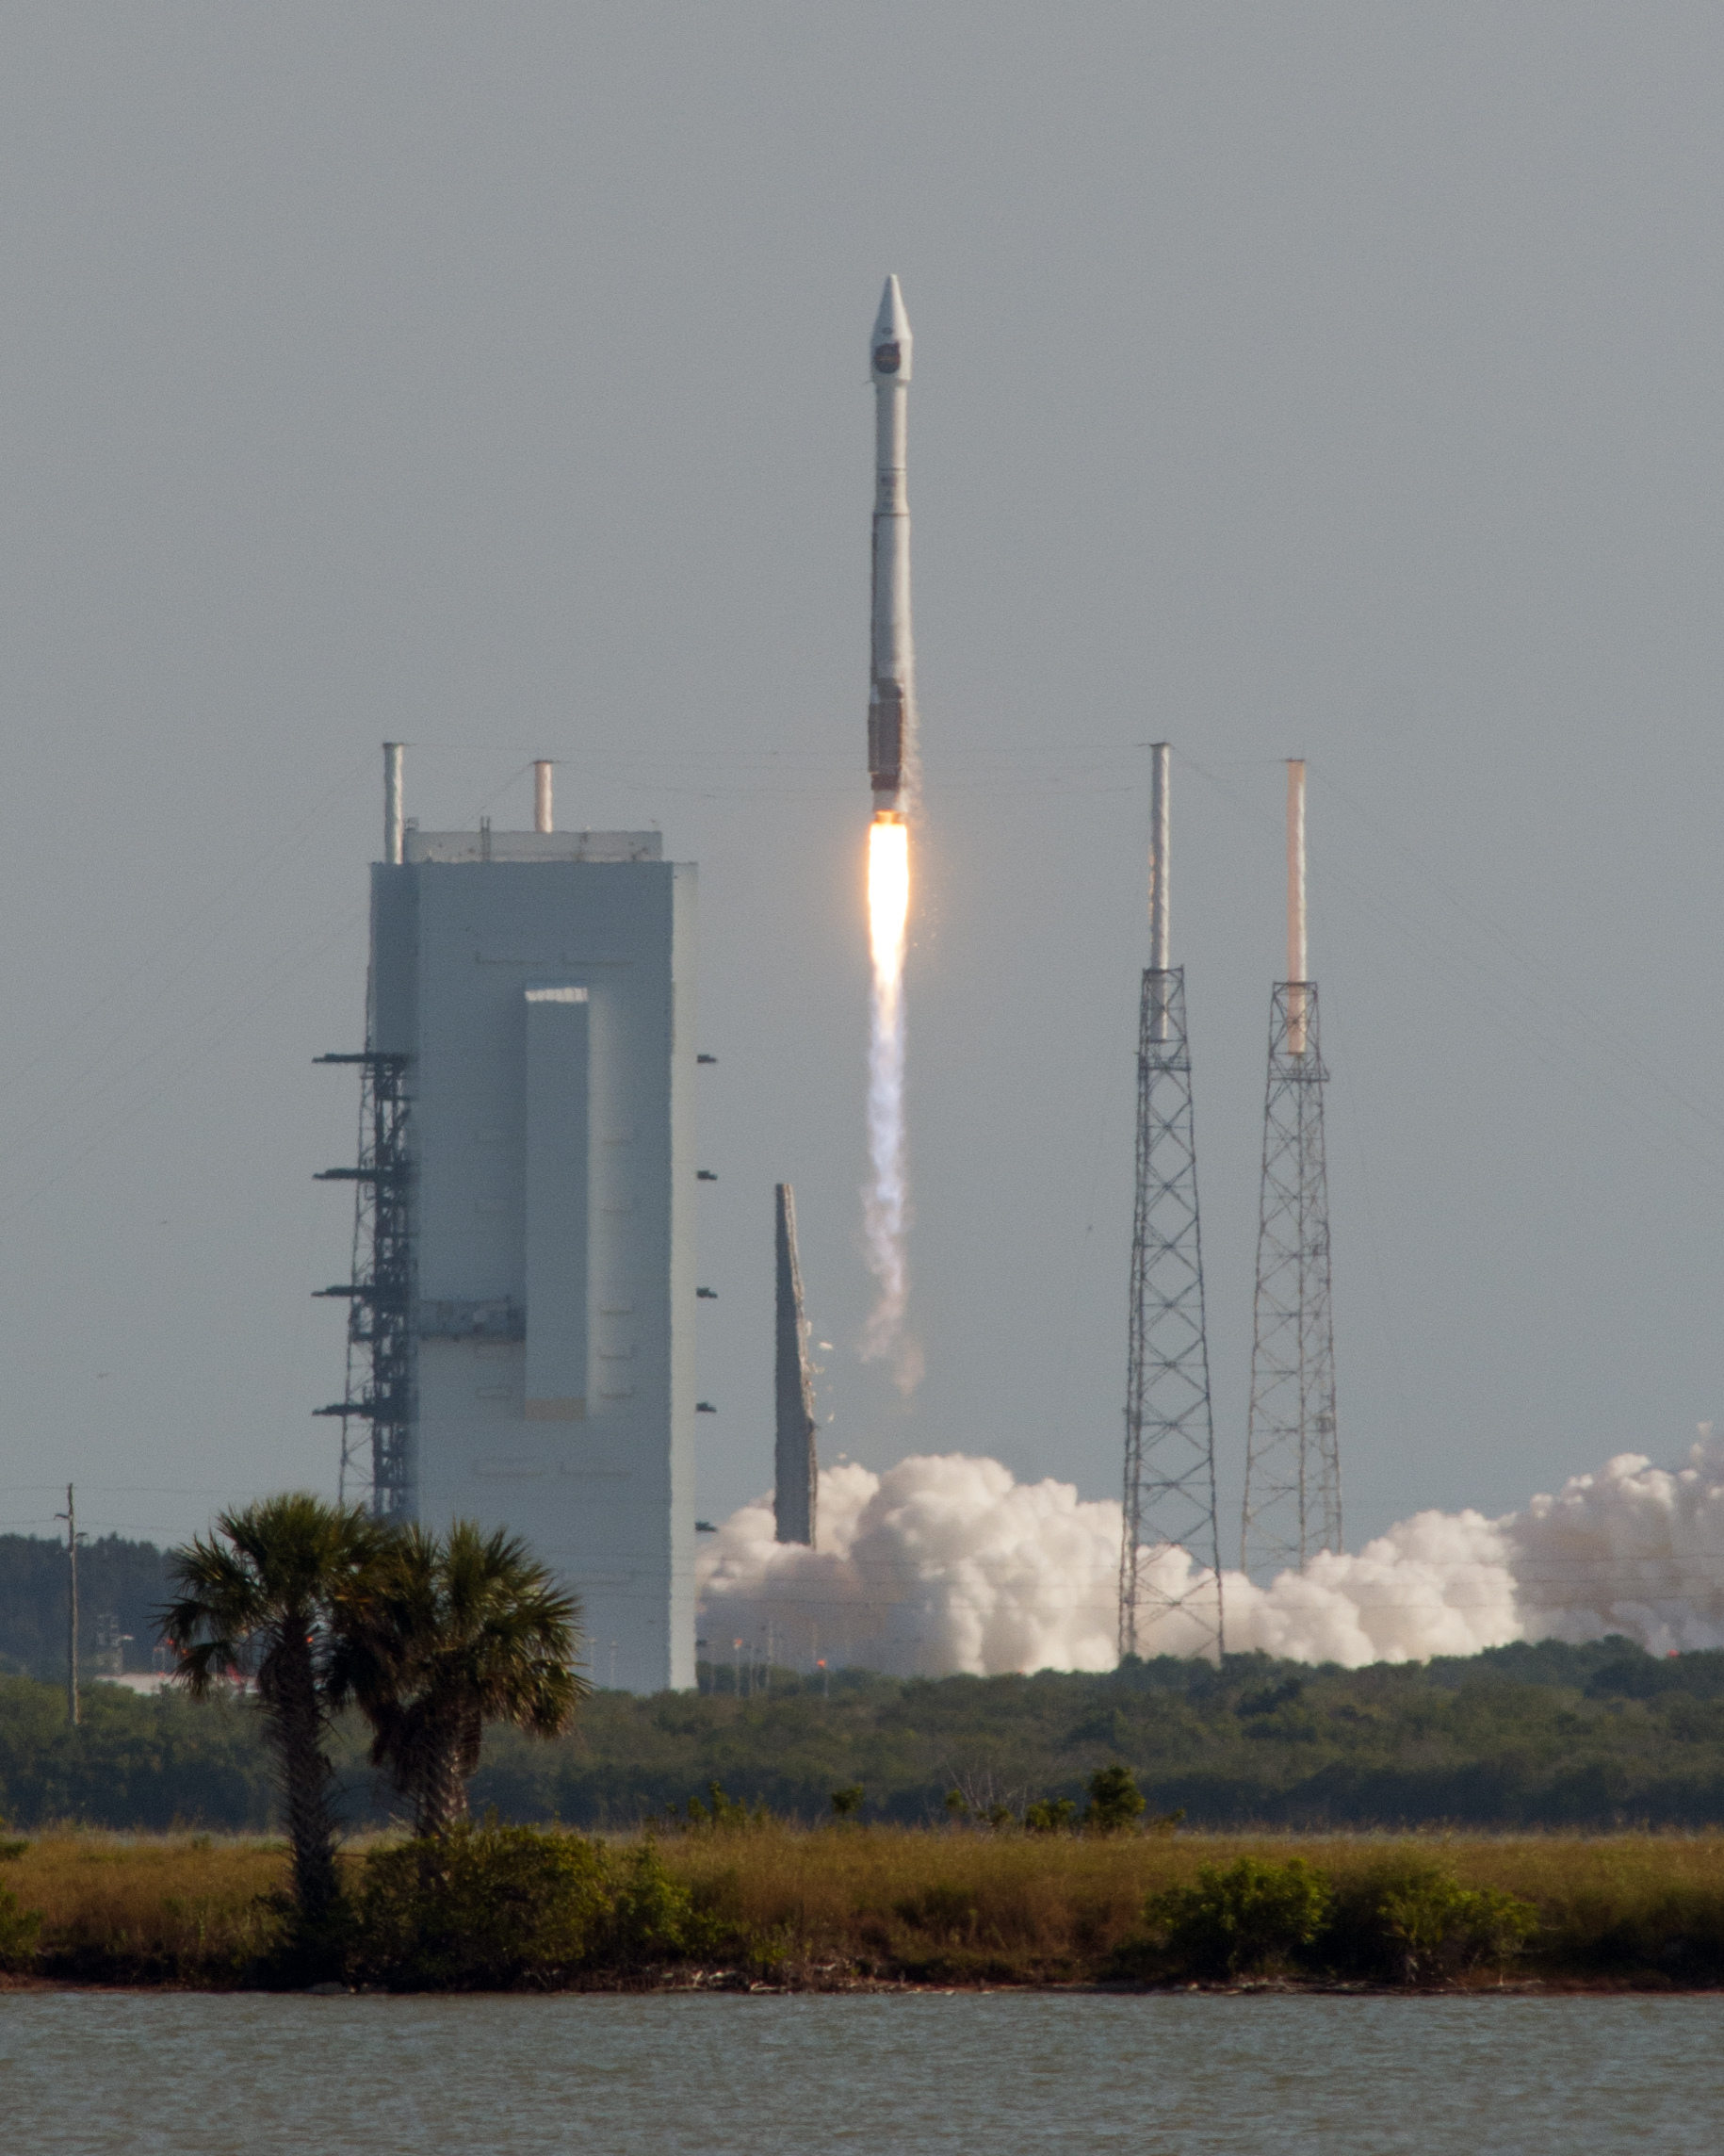 Image Source: United Launch Alliance